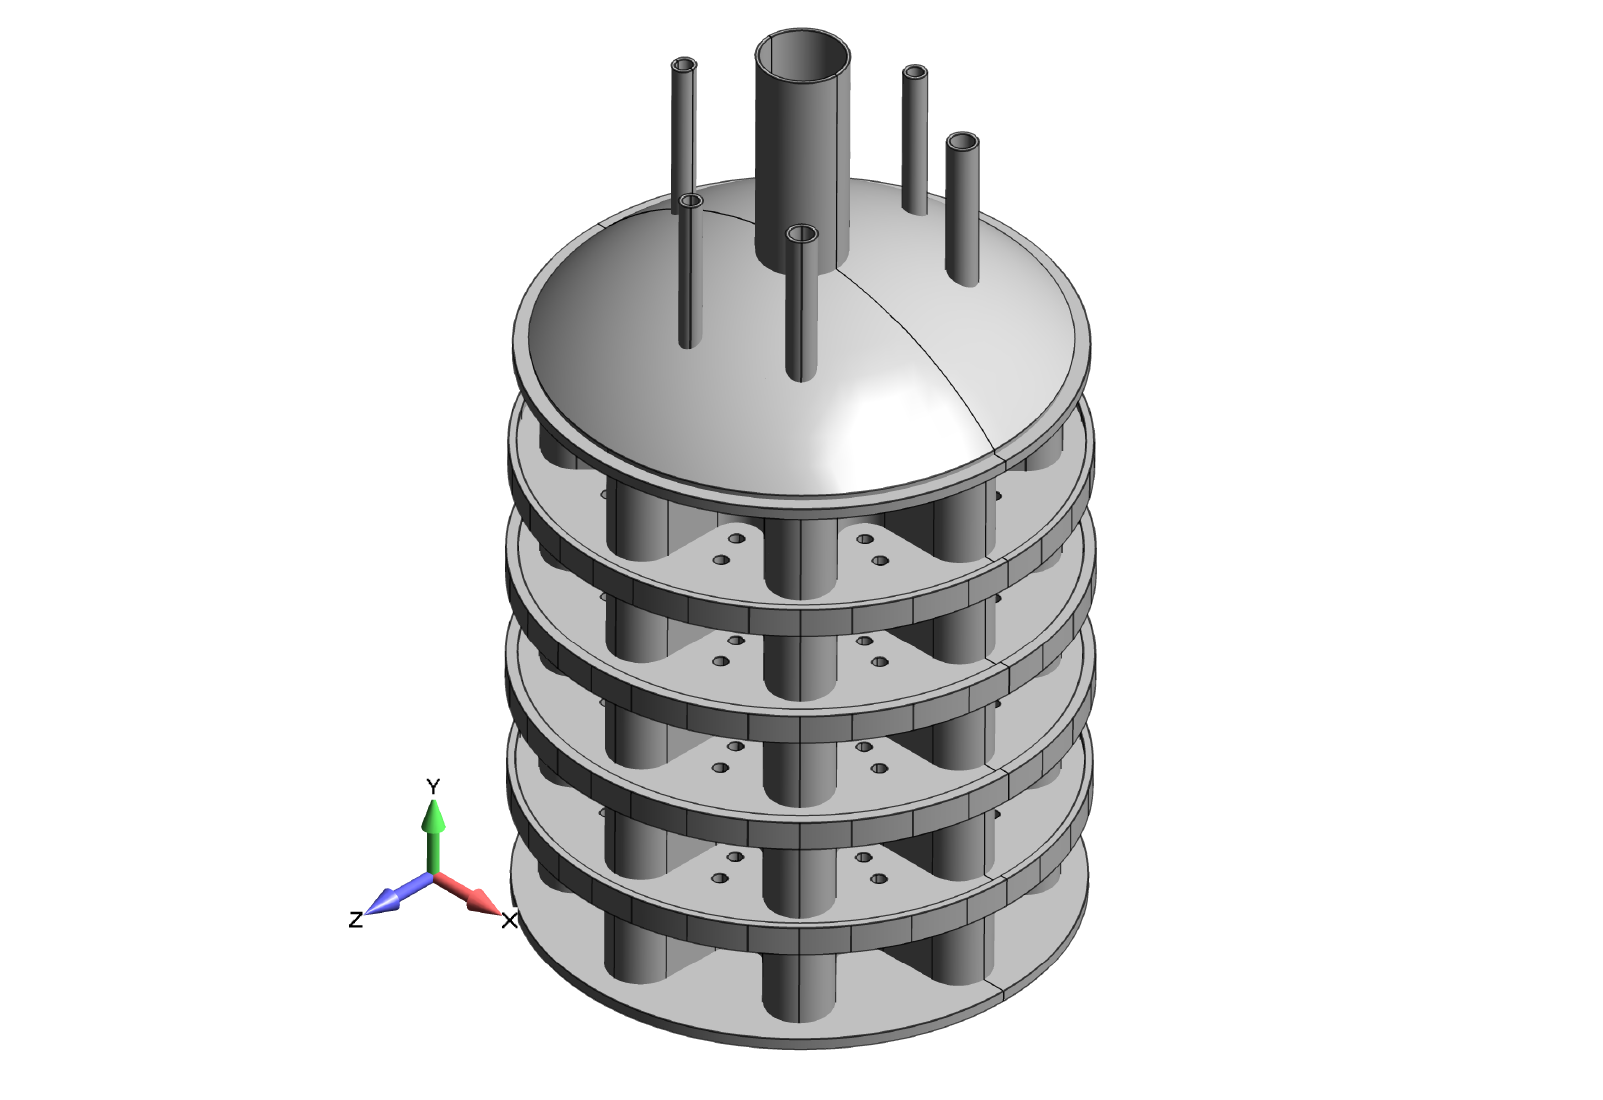 Figure 2: Final vessel design as a collection of surfaces ready for FEA plate meshing